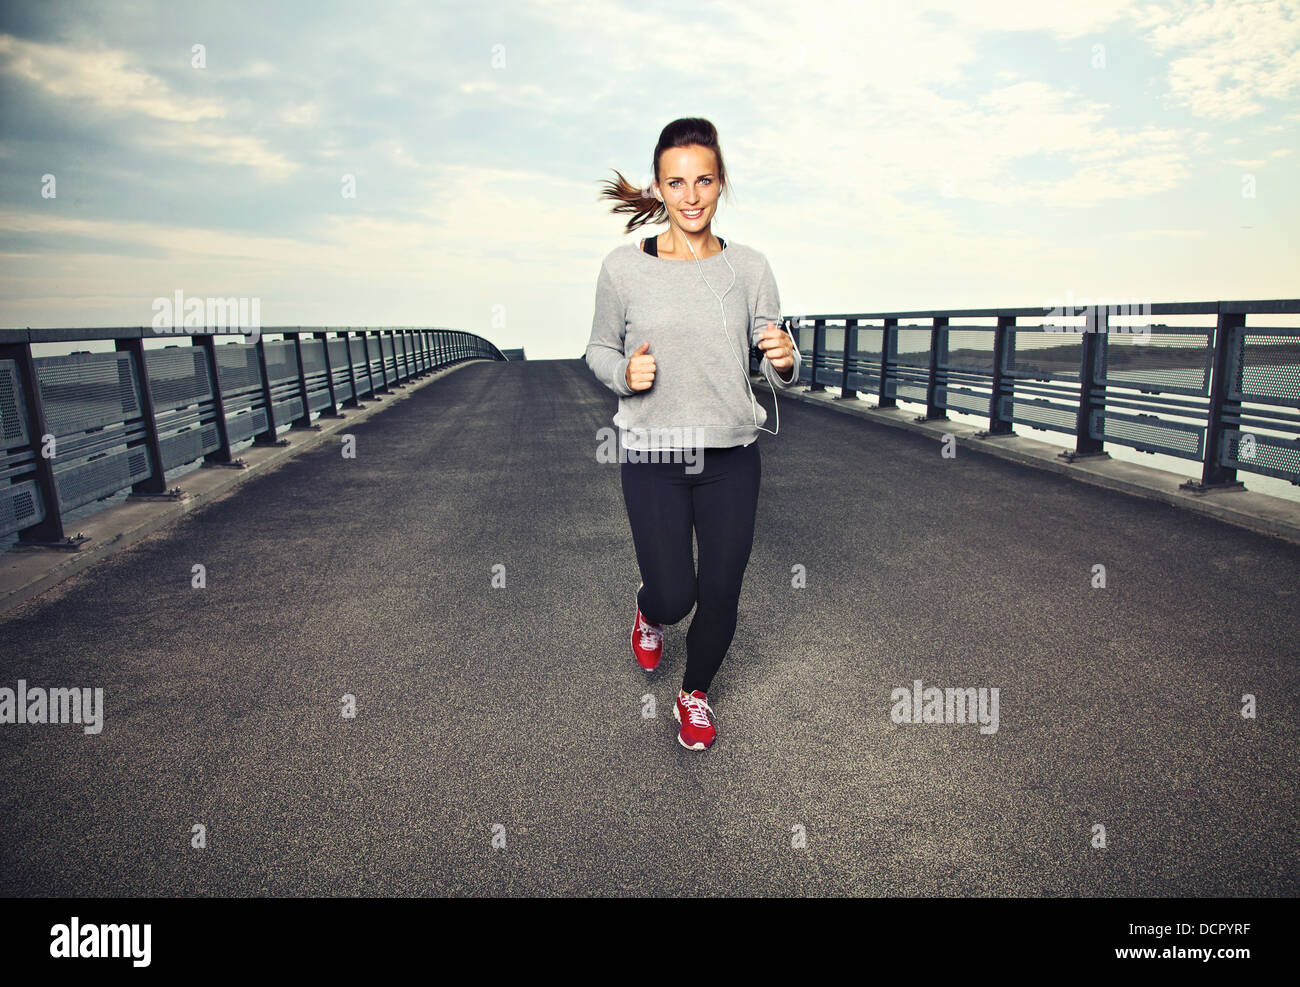 Smiling female runner doing running exercise - Stock Image